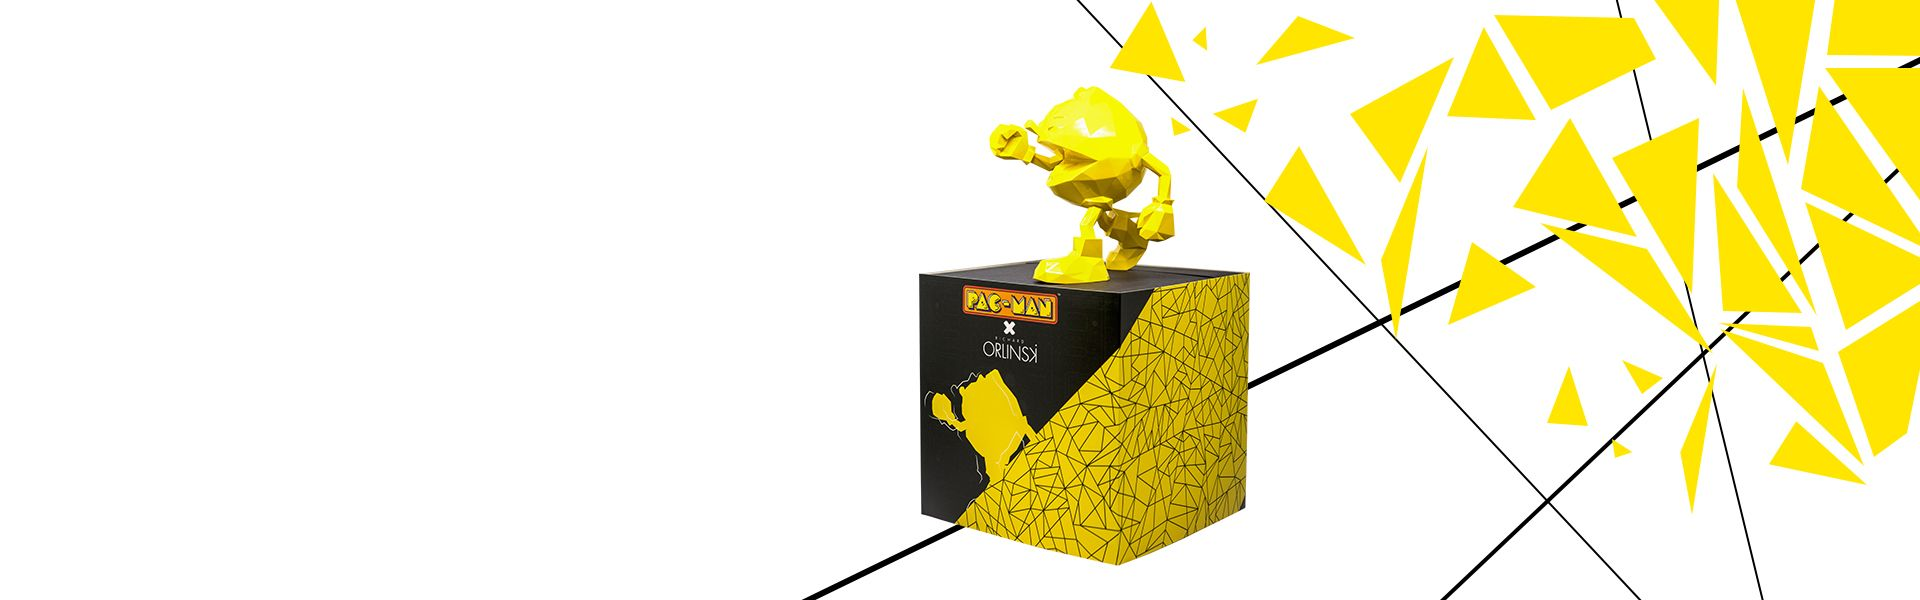 PAC-MAN x Orlinski : La sculpture officielle